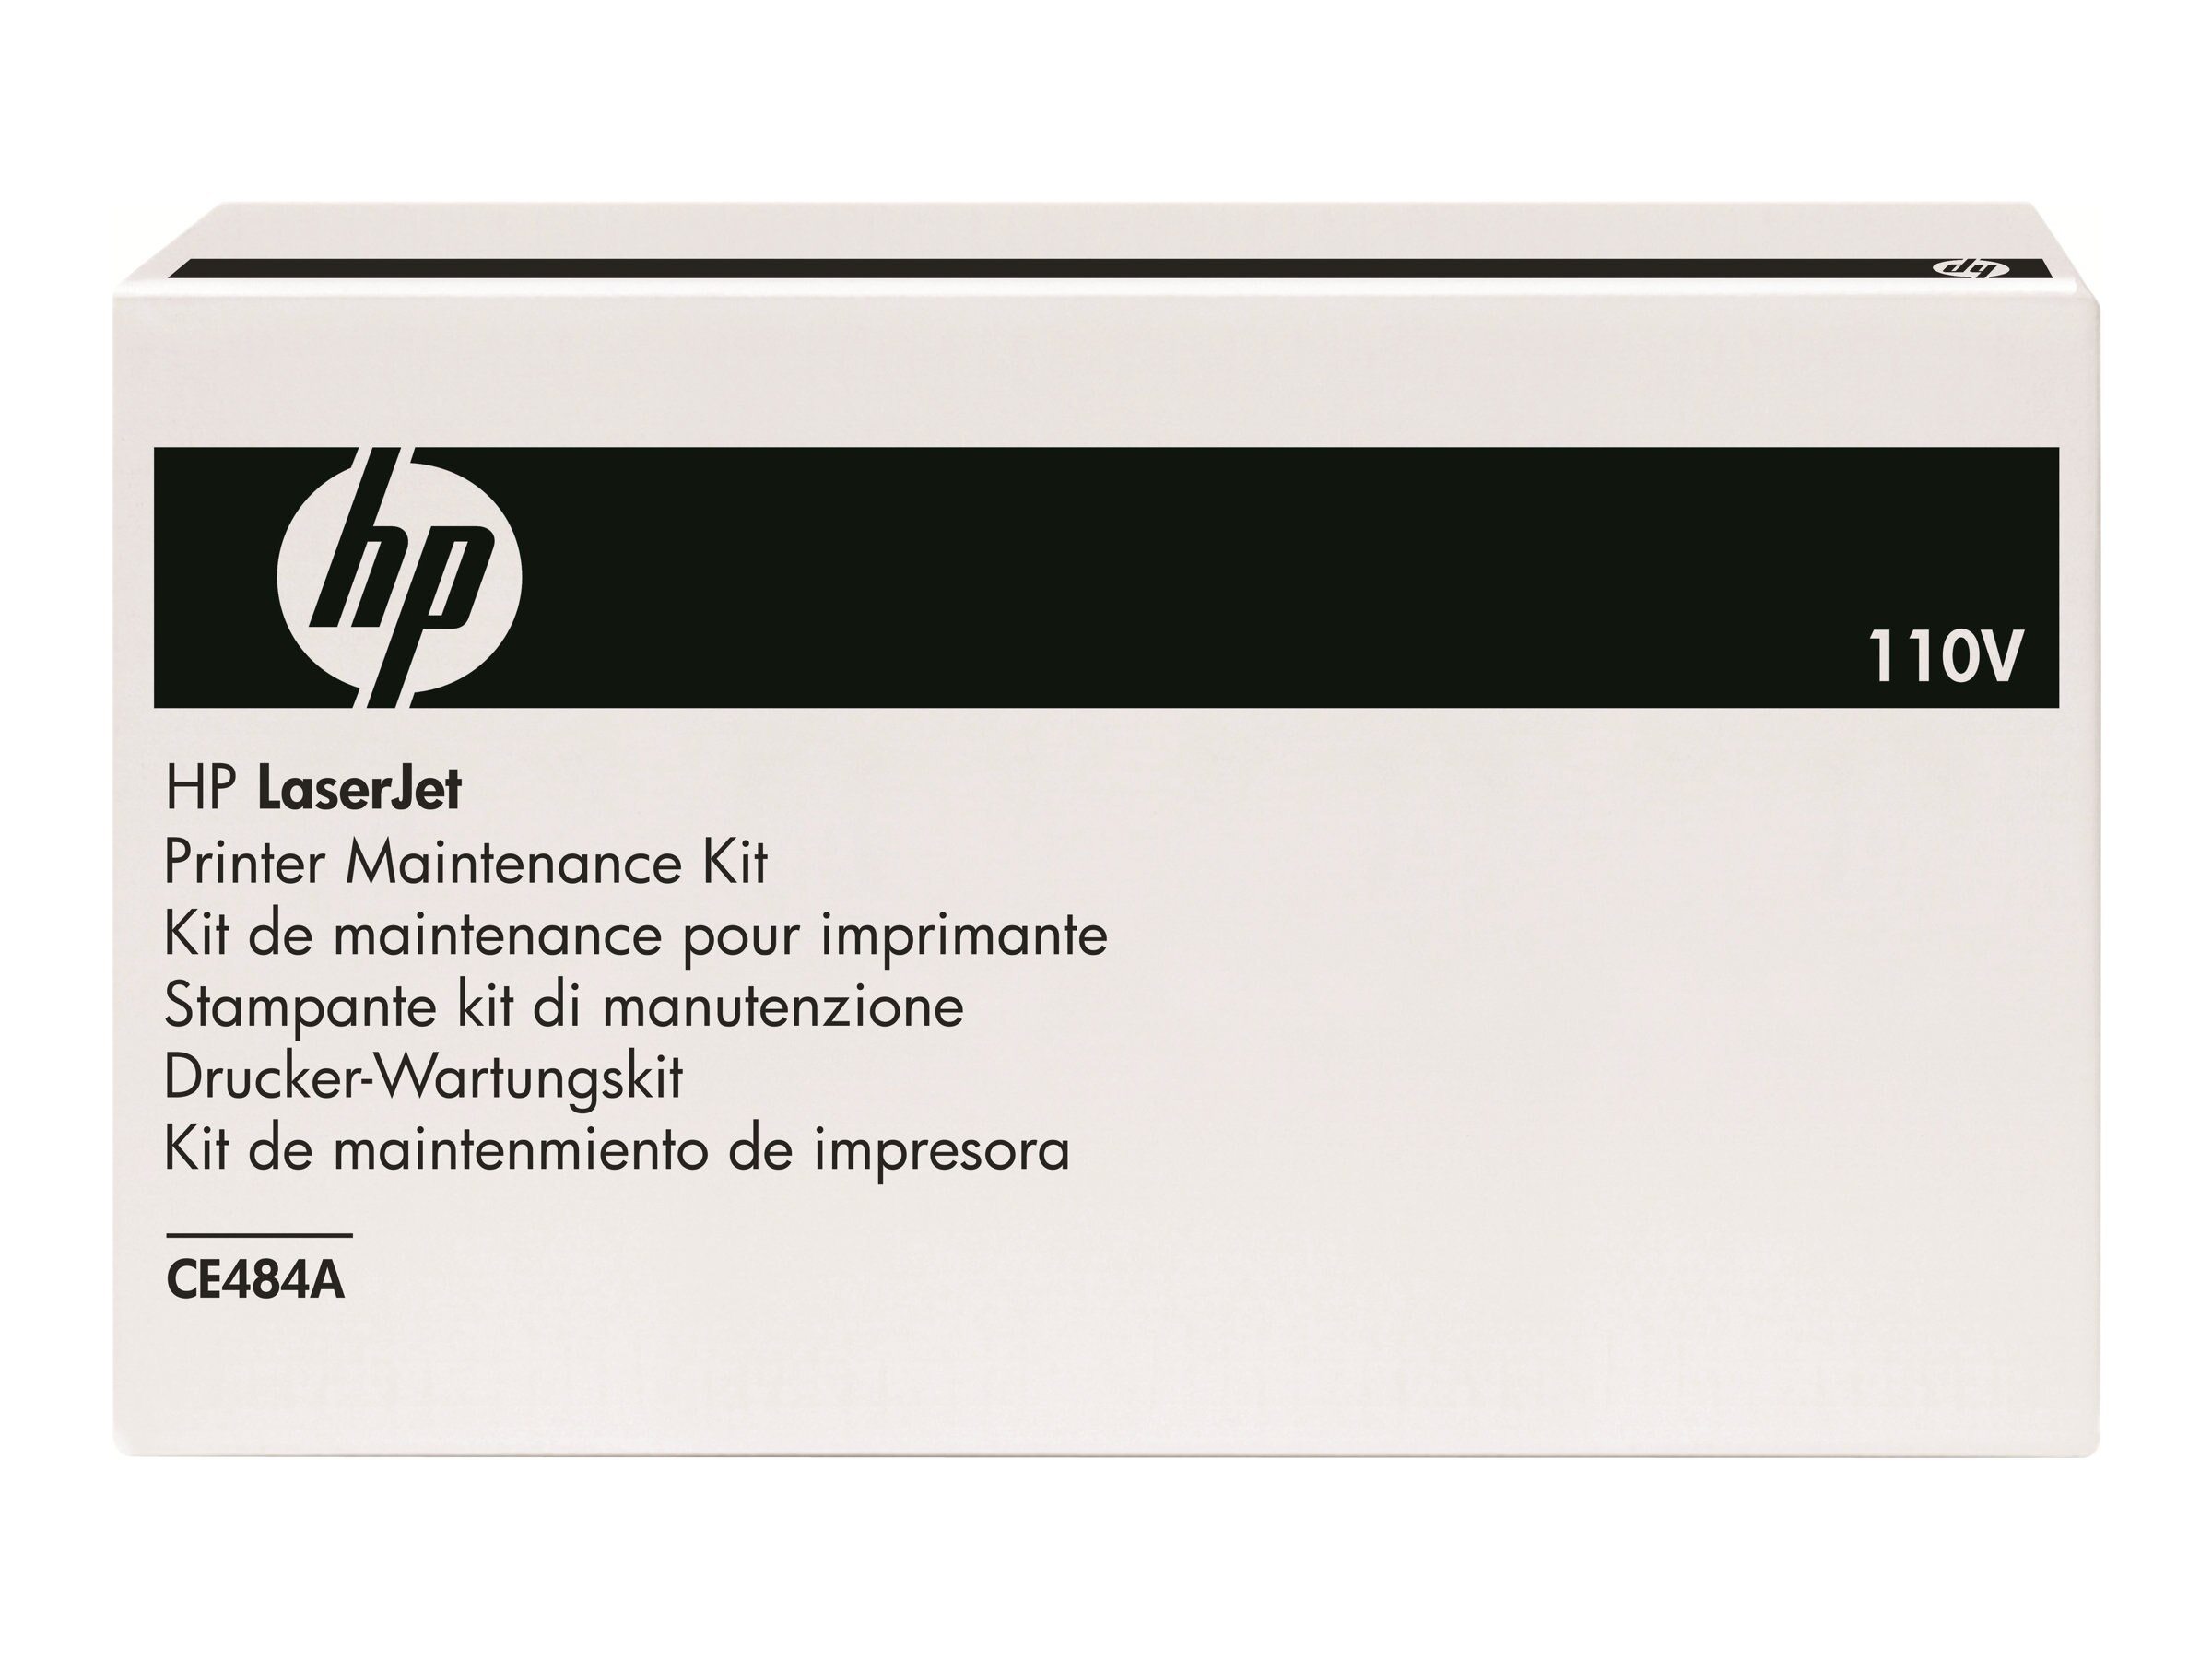 HP 110V Fuser Kit for HP Color LaserJet CP3520 Printer Series & HP Color LaserJet CM3530 MFP Series